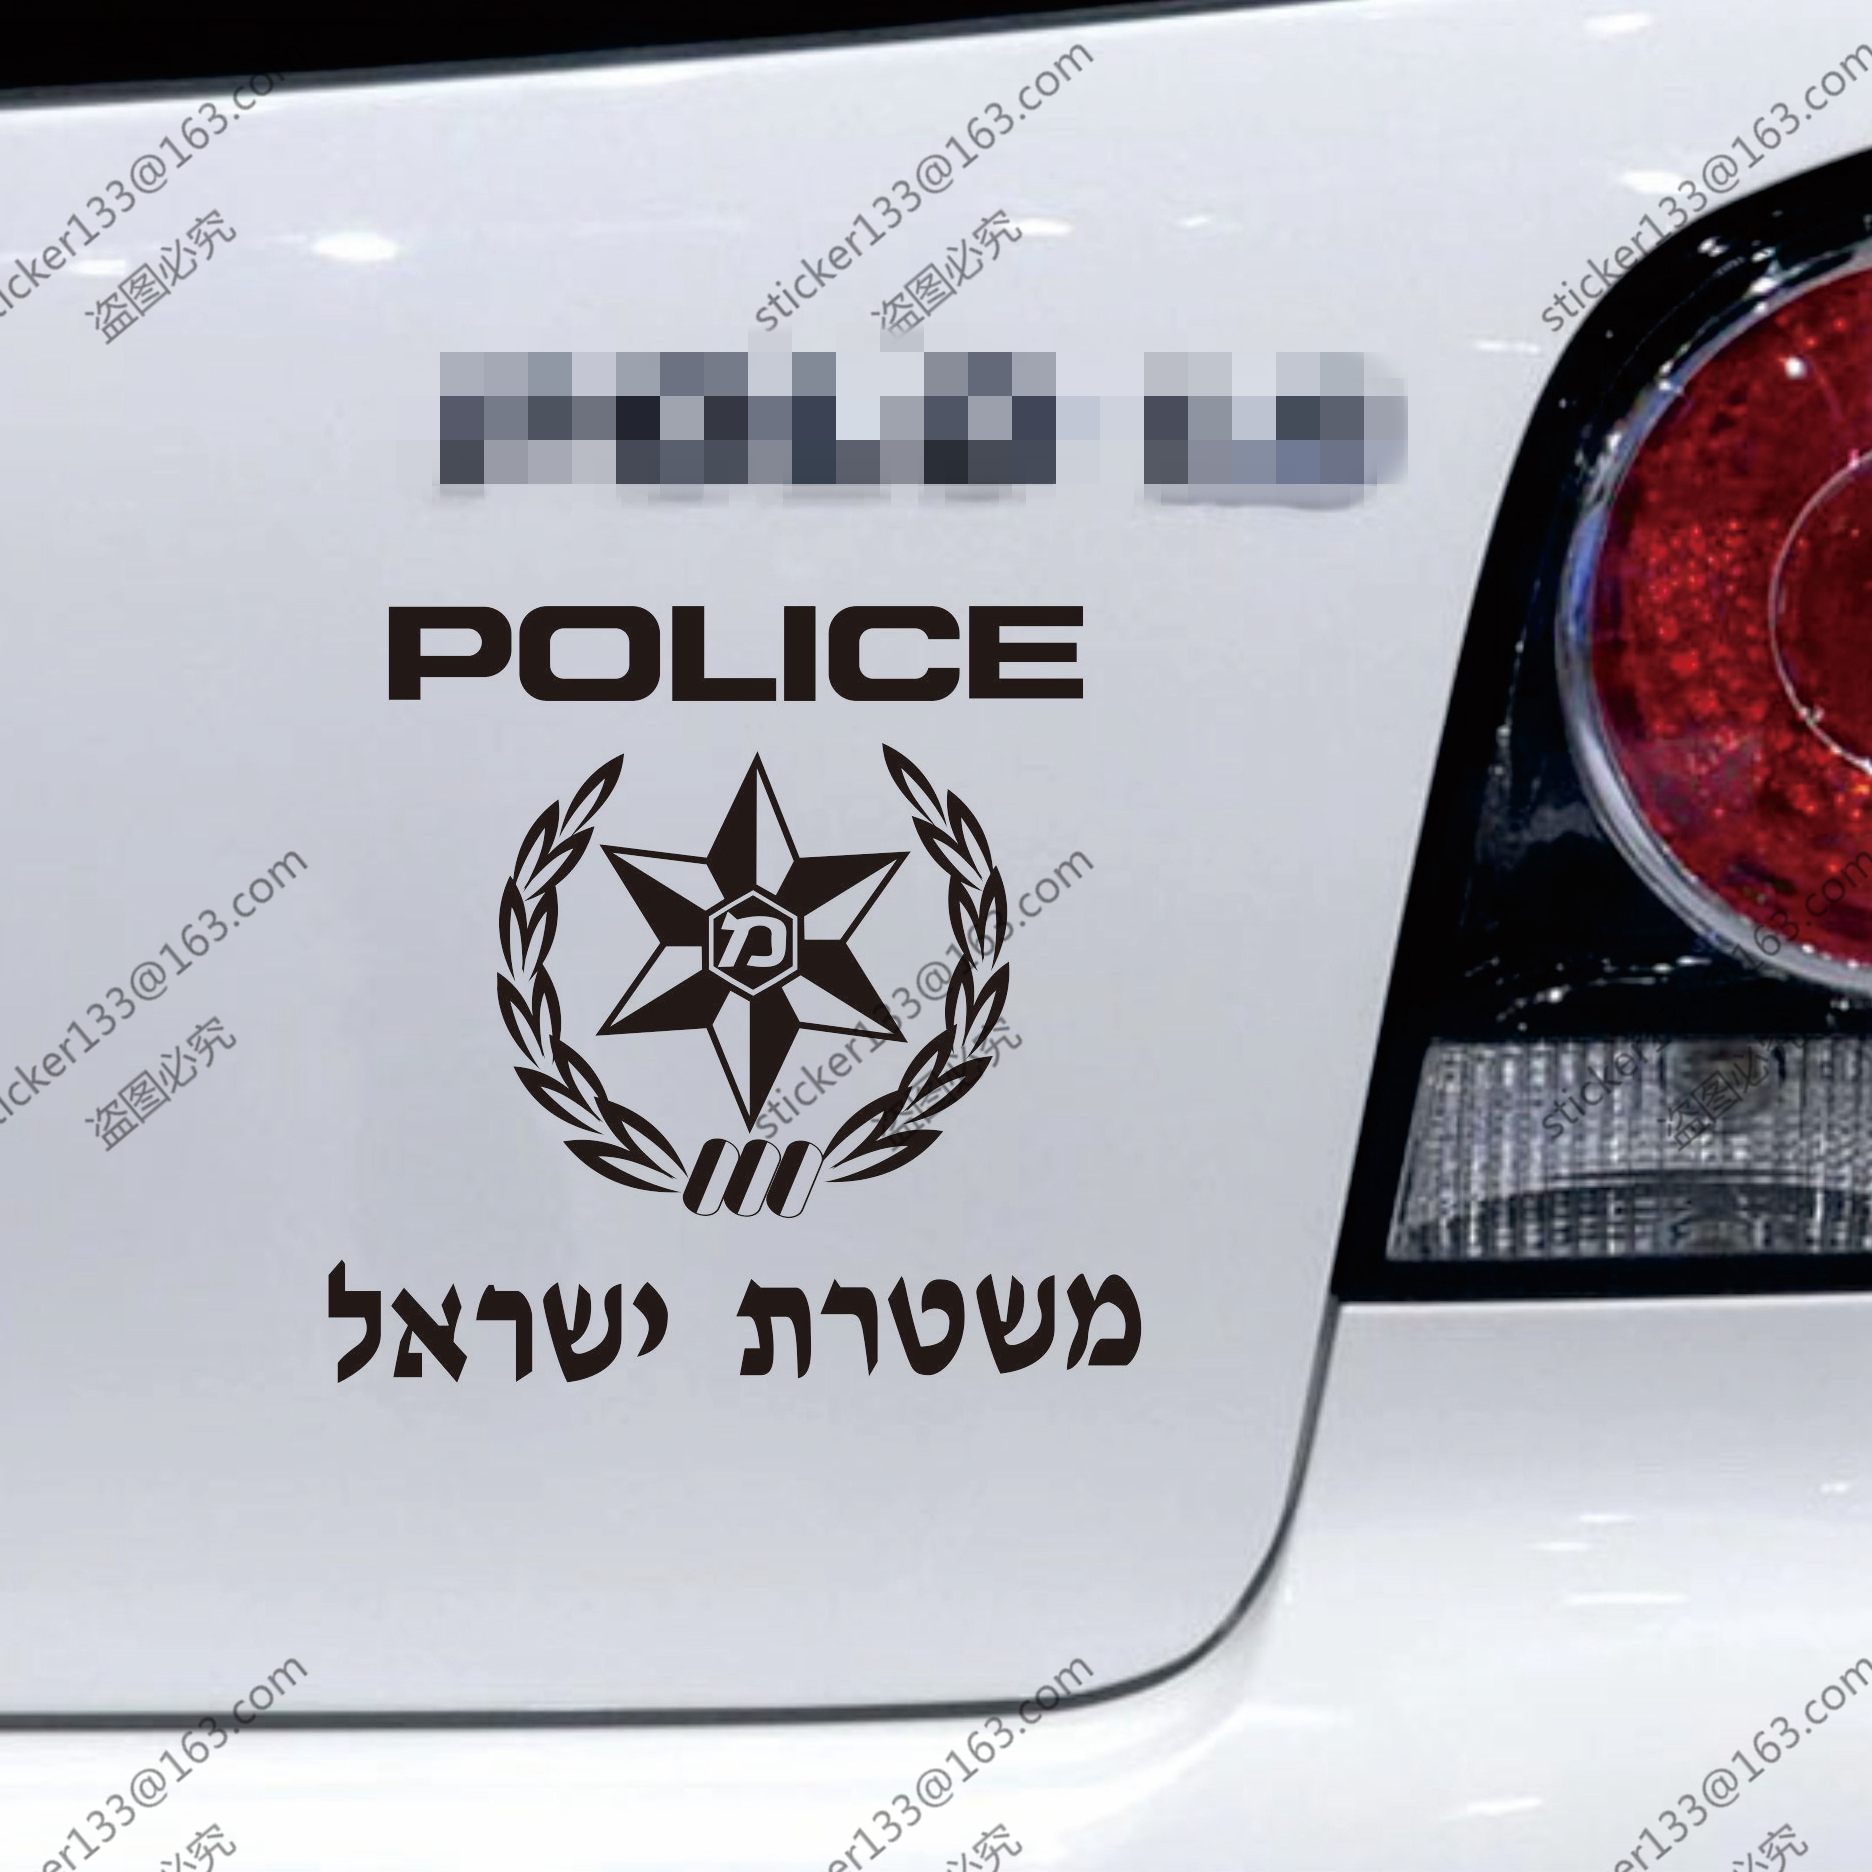 Israel Police Decal Sticker Force Israeli Military Army